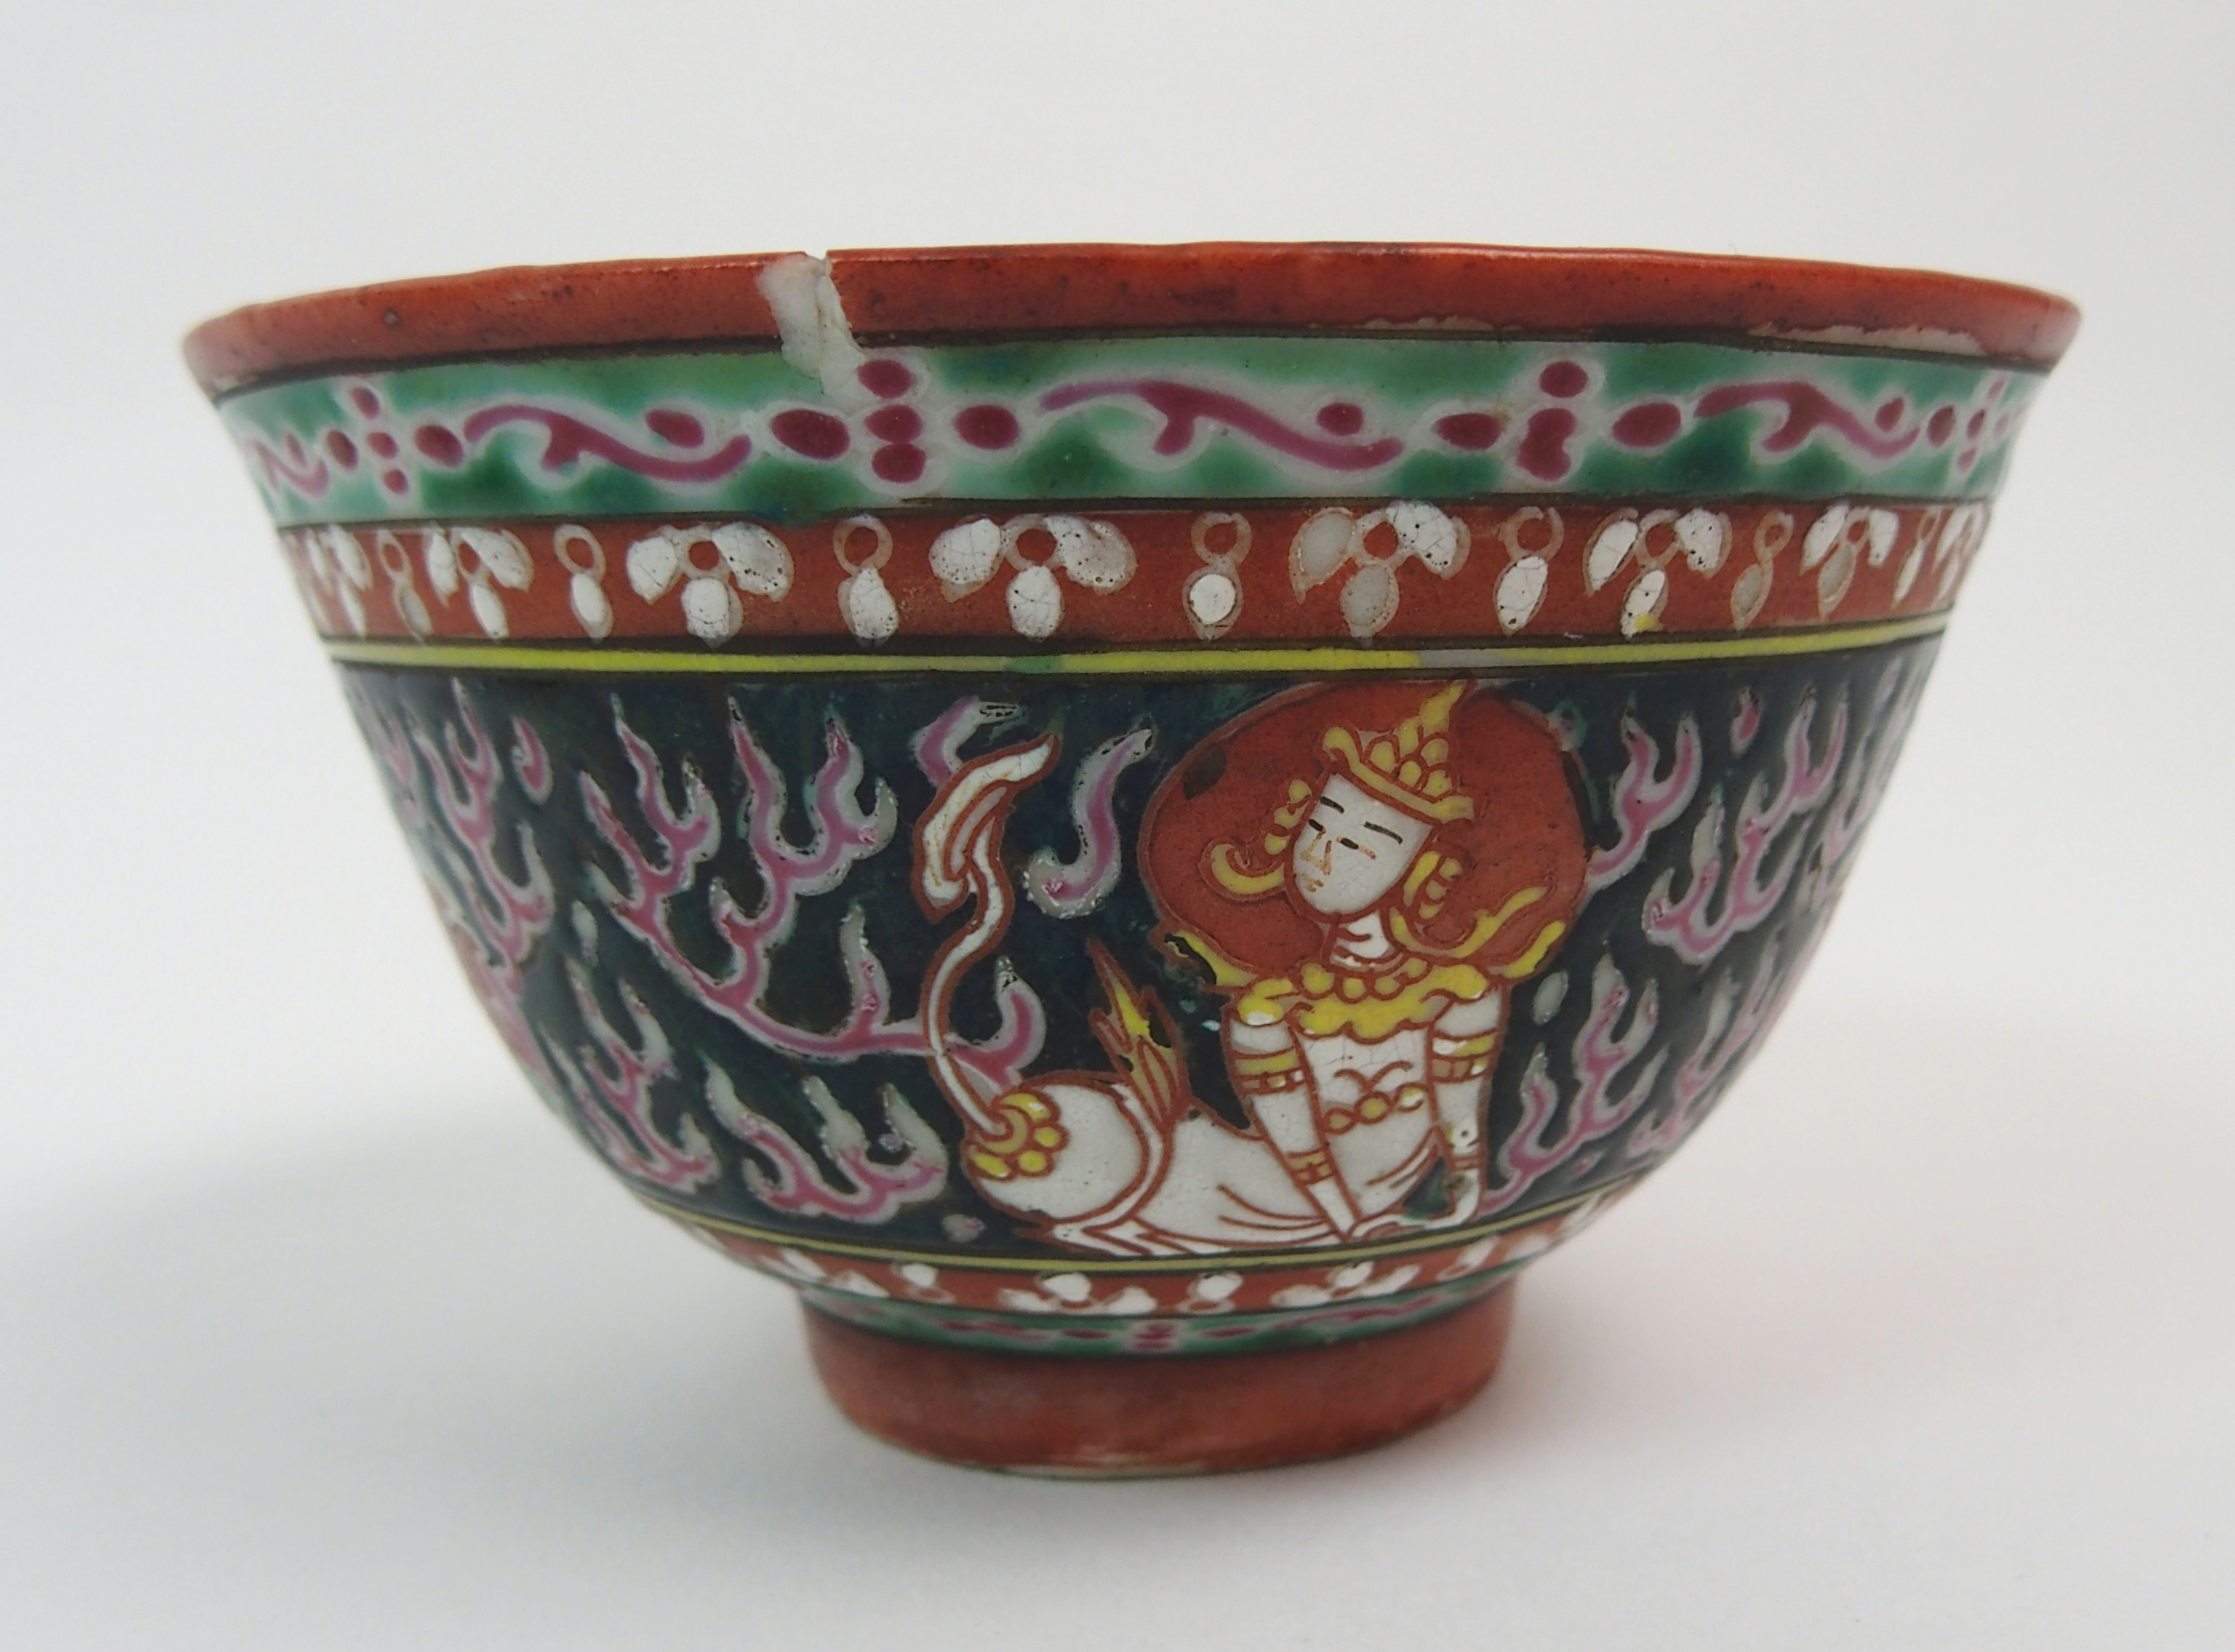 Lot 38 - A CHINESE EXPORT BOWL made for the Indian market painted with alternative deities on a black and